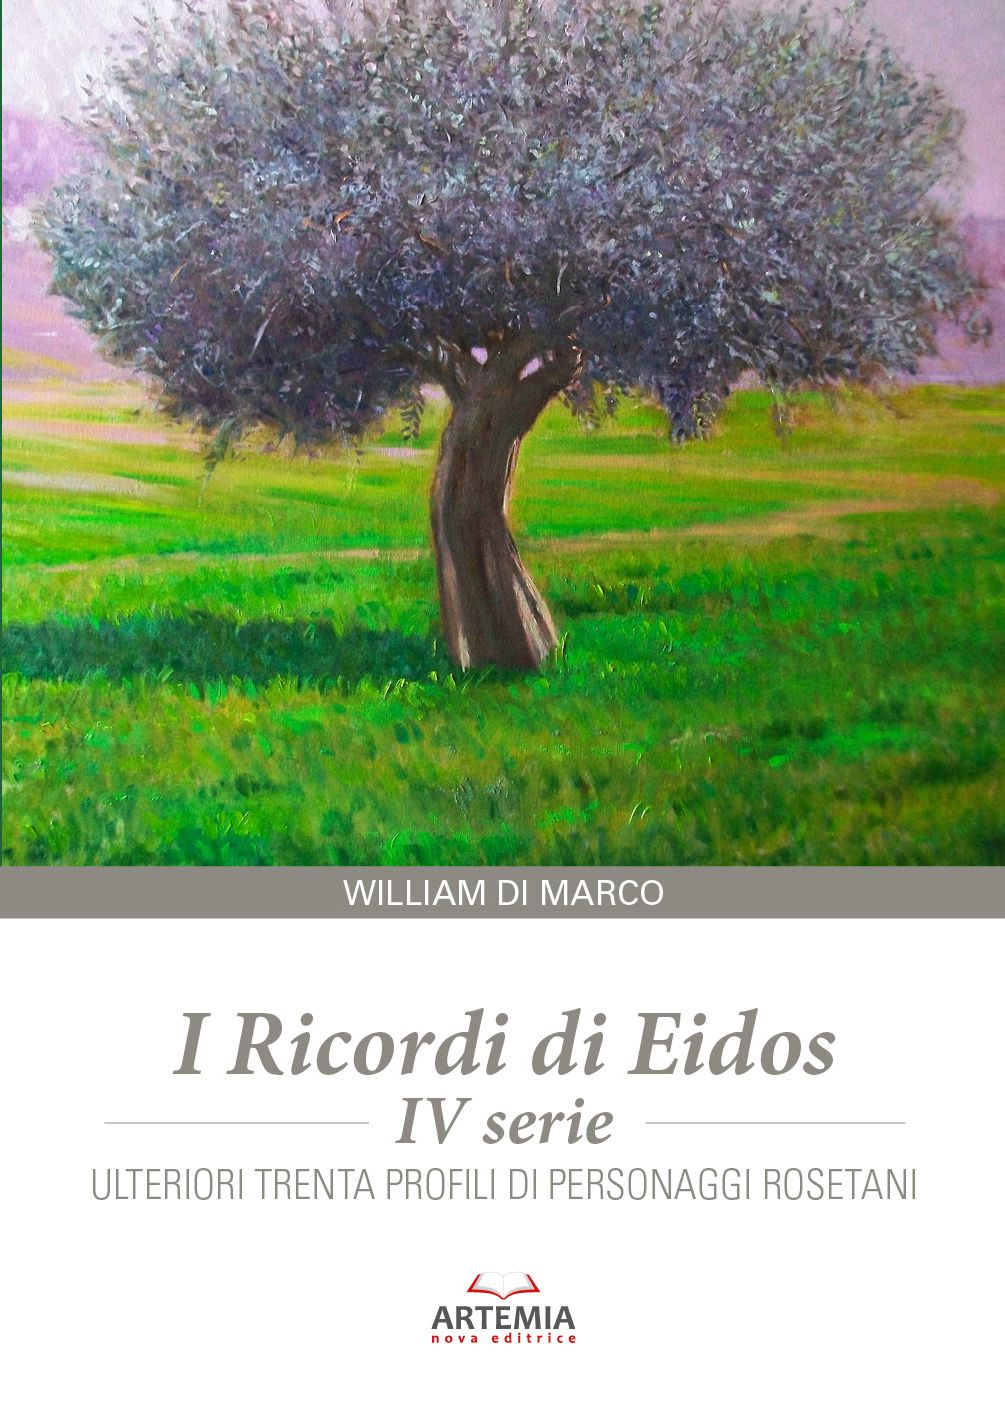 http://www.williamdimarco.it/files/023 - I Ricordi di Eidos - IV serie.jpg